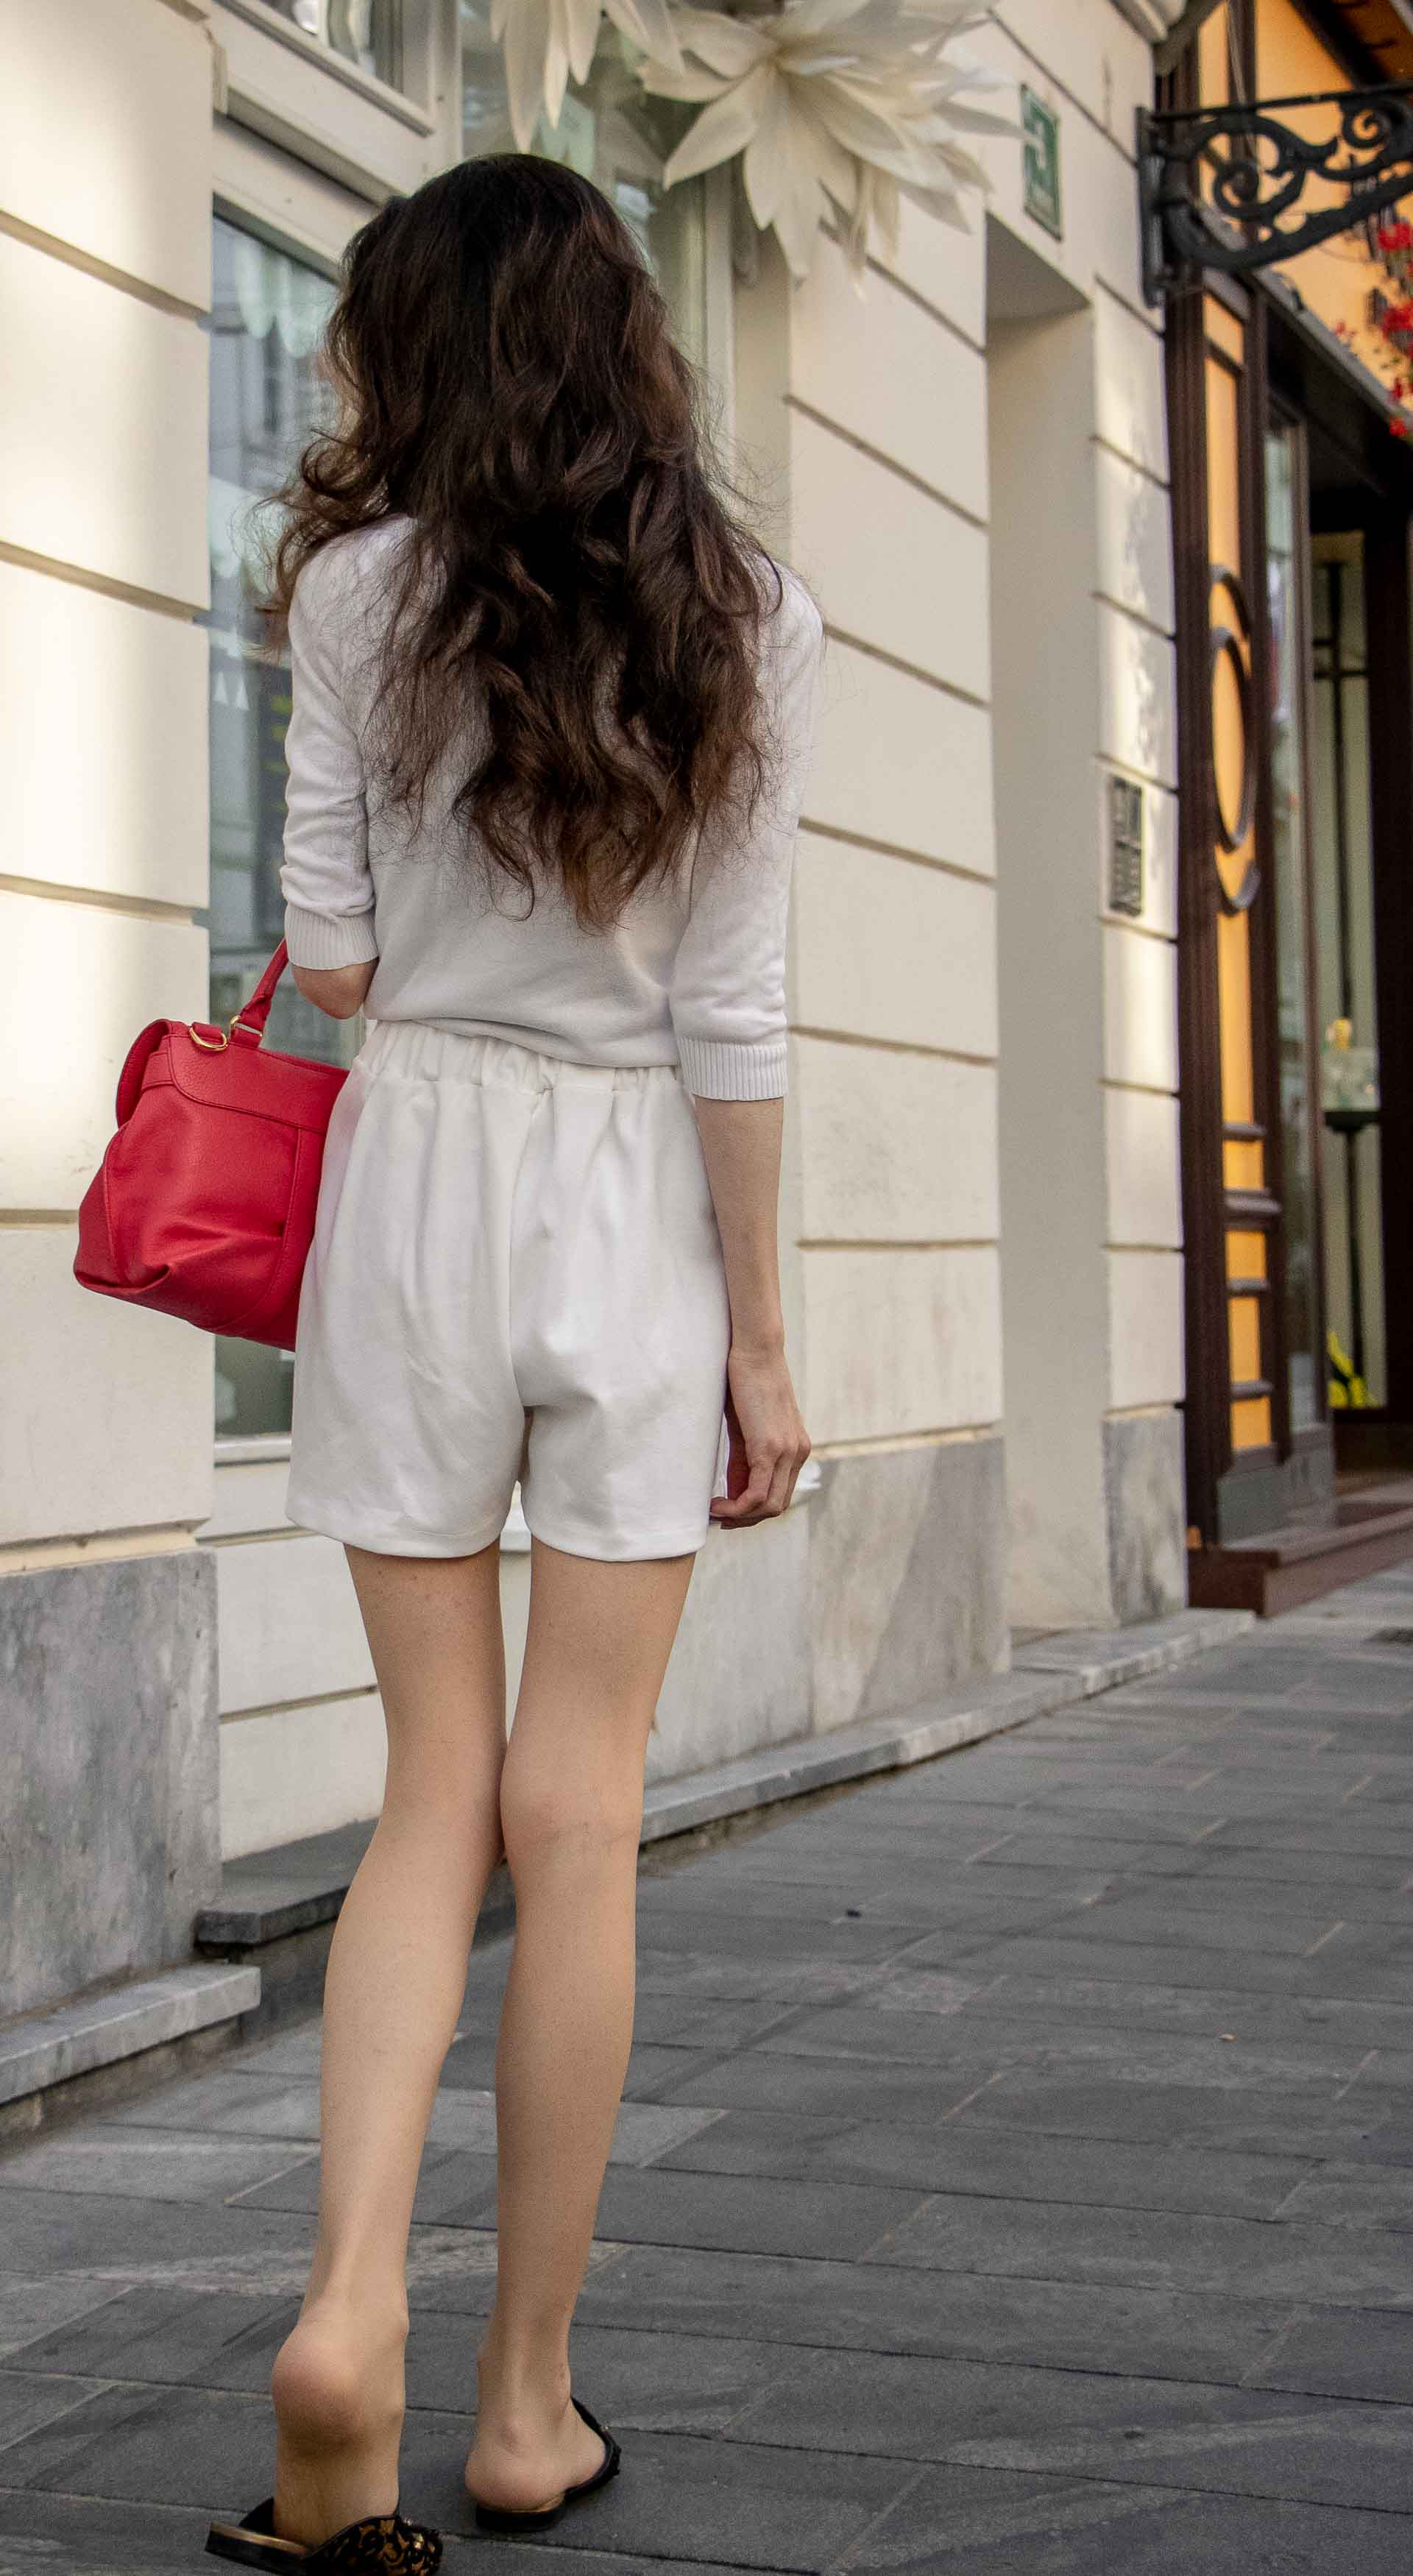 Beautiful Slovenian Fashion Blogger Veronika Lipar of Brunette from Wall dressed in all in white outfit, a white sweater, white tailored shorts, black flat slipper mules, pink top handle bag, a paper bag on the street in Ljubljana